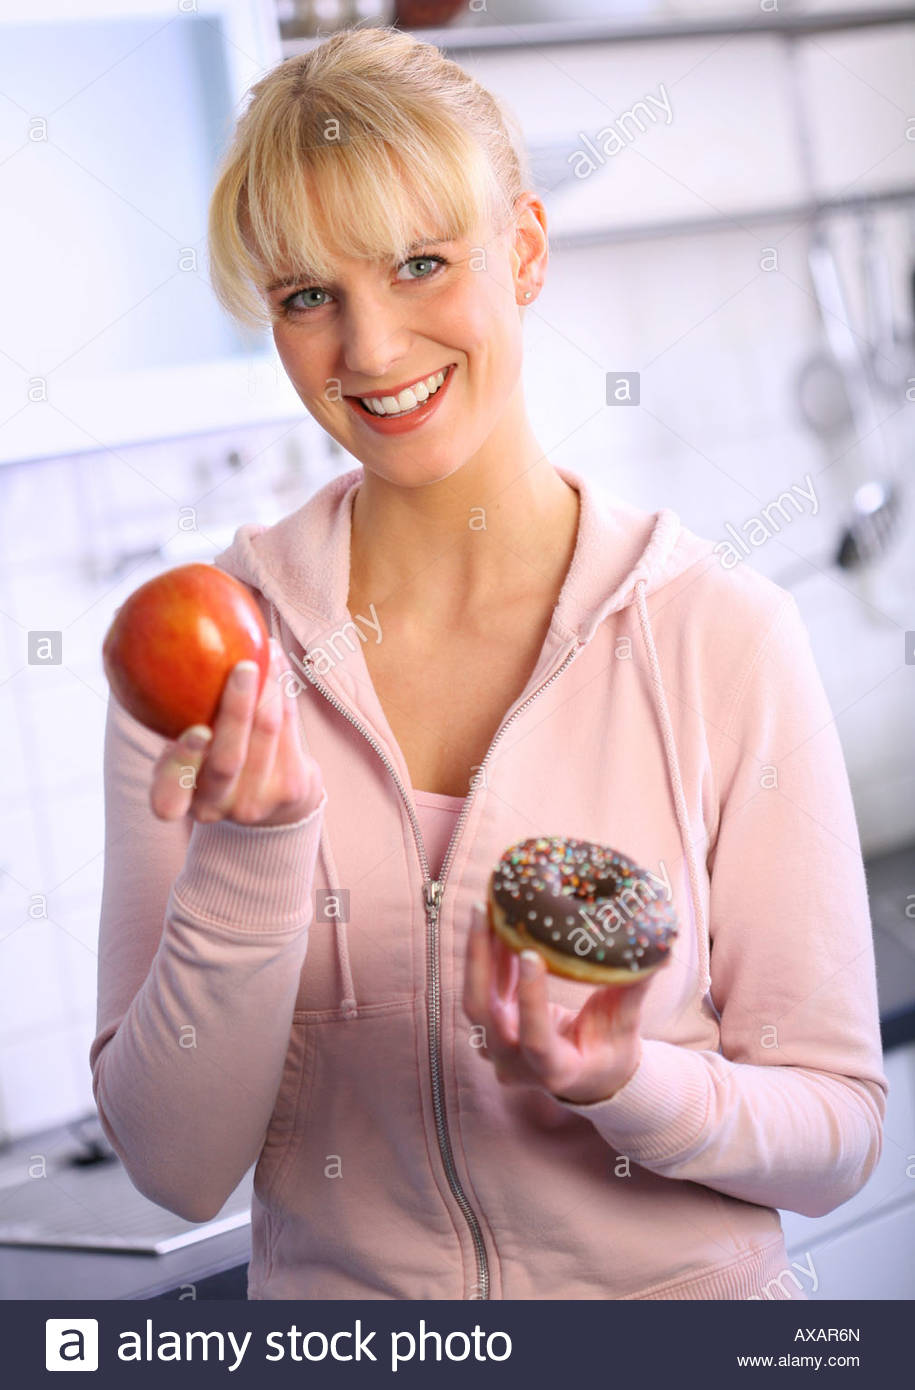 woman eating a snack holding an red apple and a donut in her hand - Stock Image